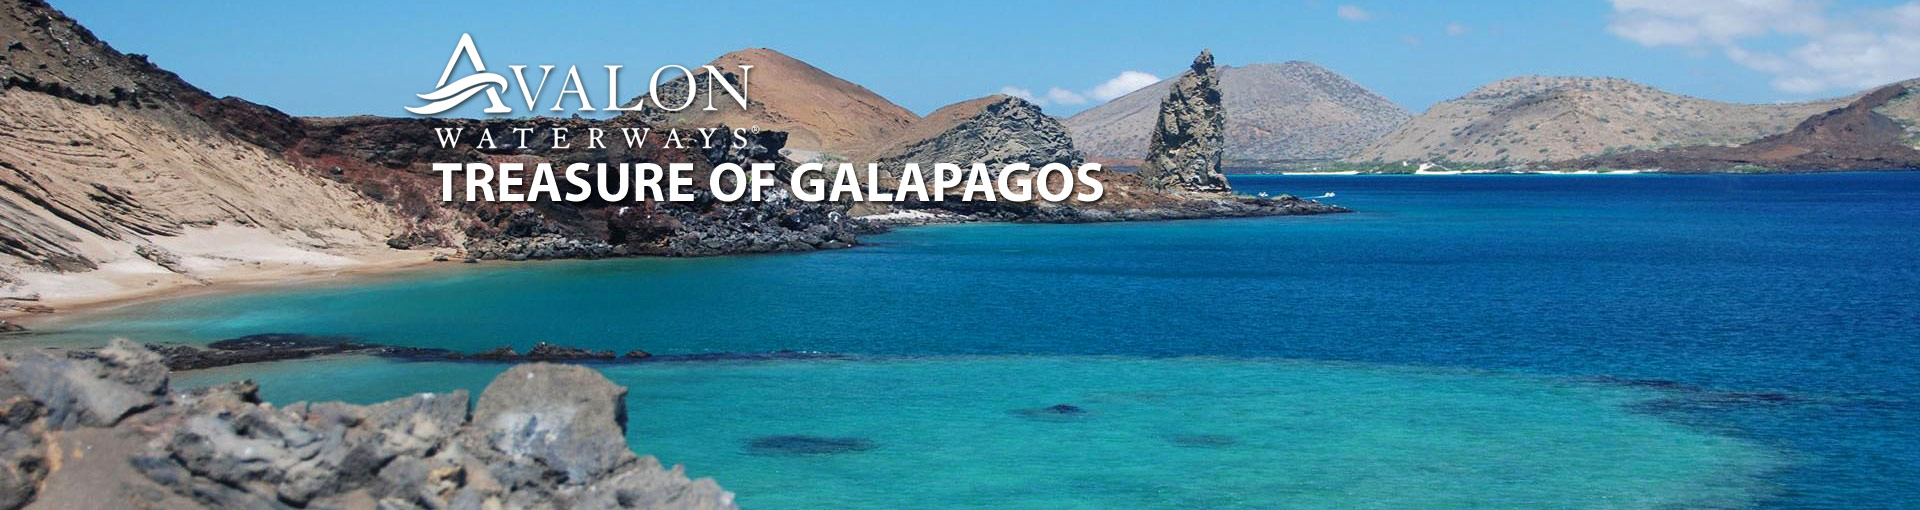 Avalon Waterways Treasure of Galapagos Ship